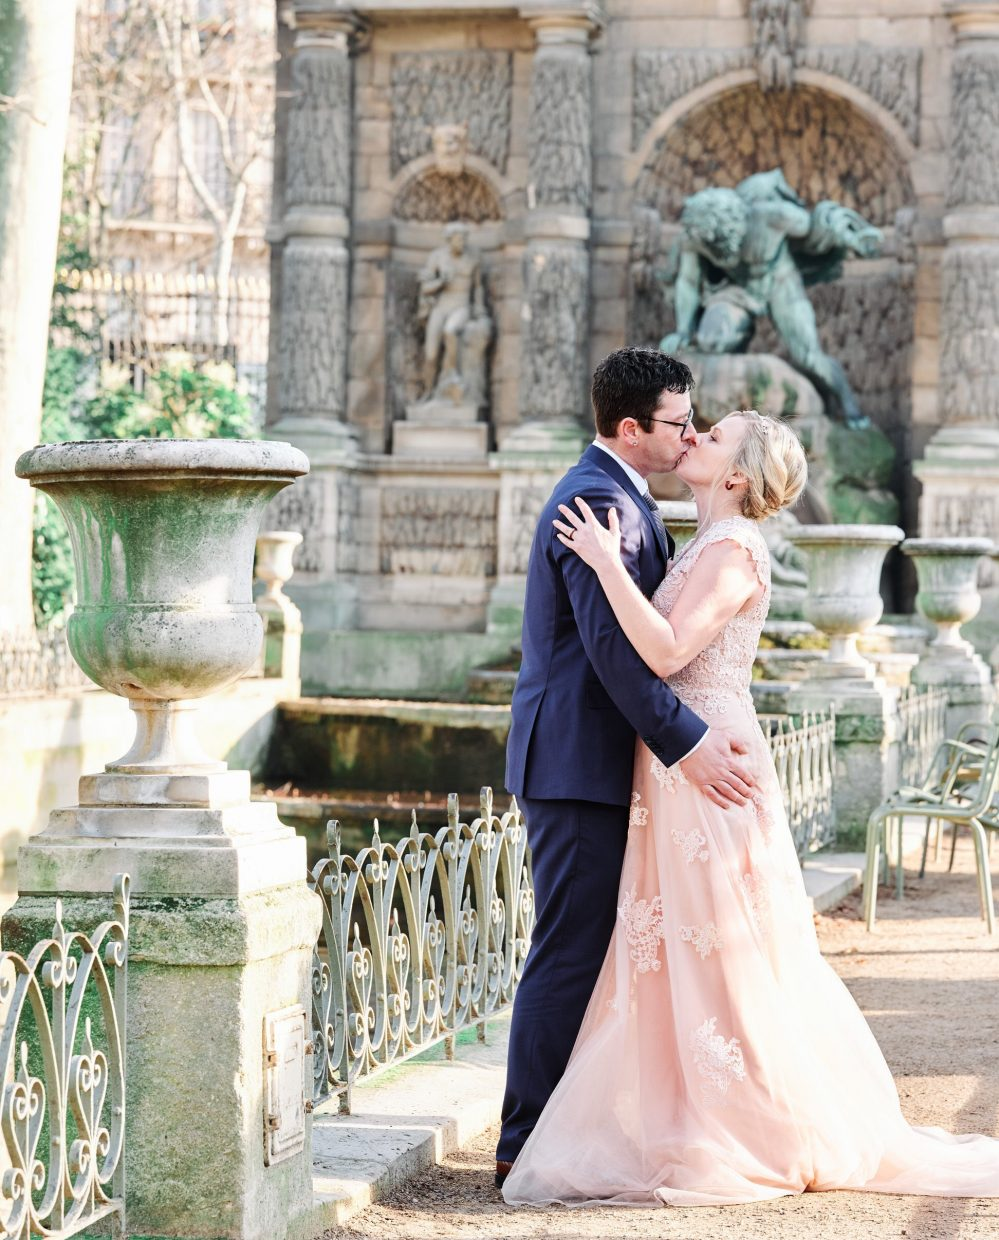 paris vow renewal at luxembourg gardens with picture me paris